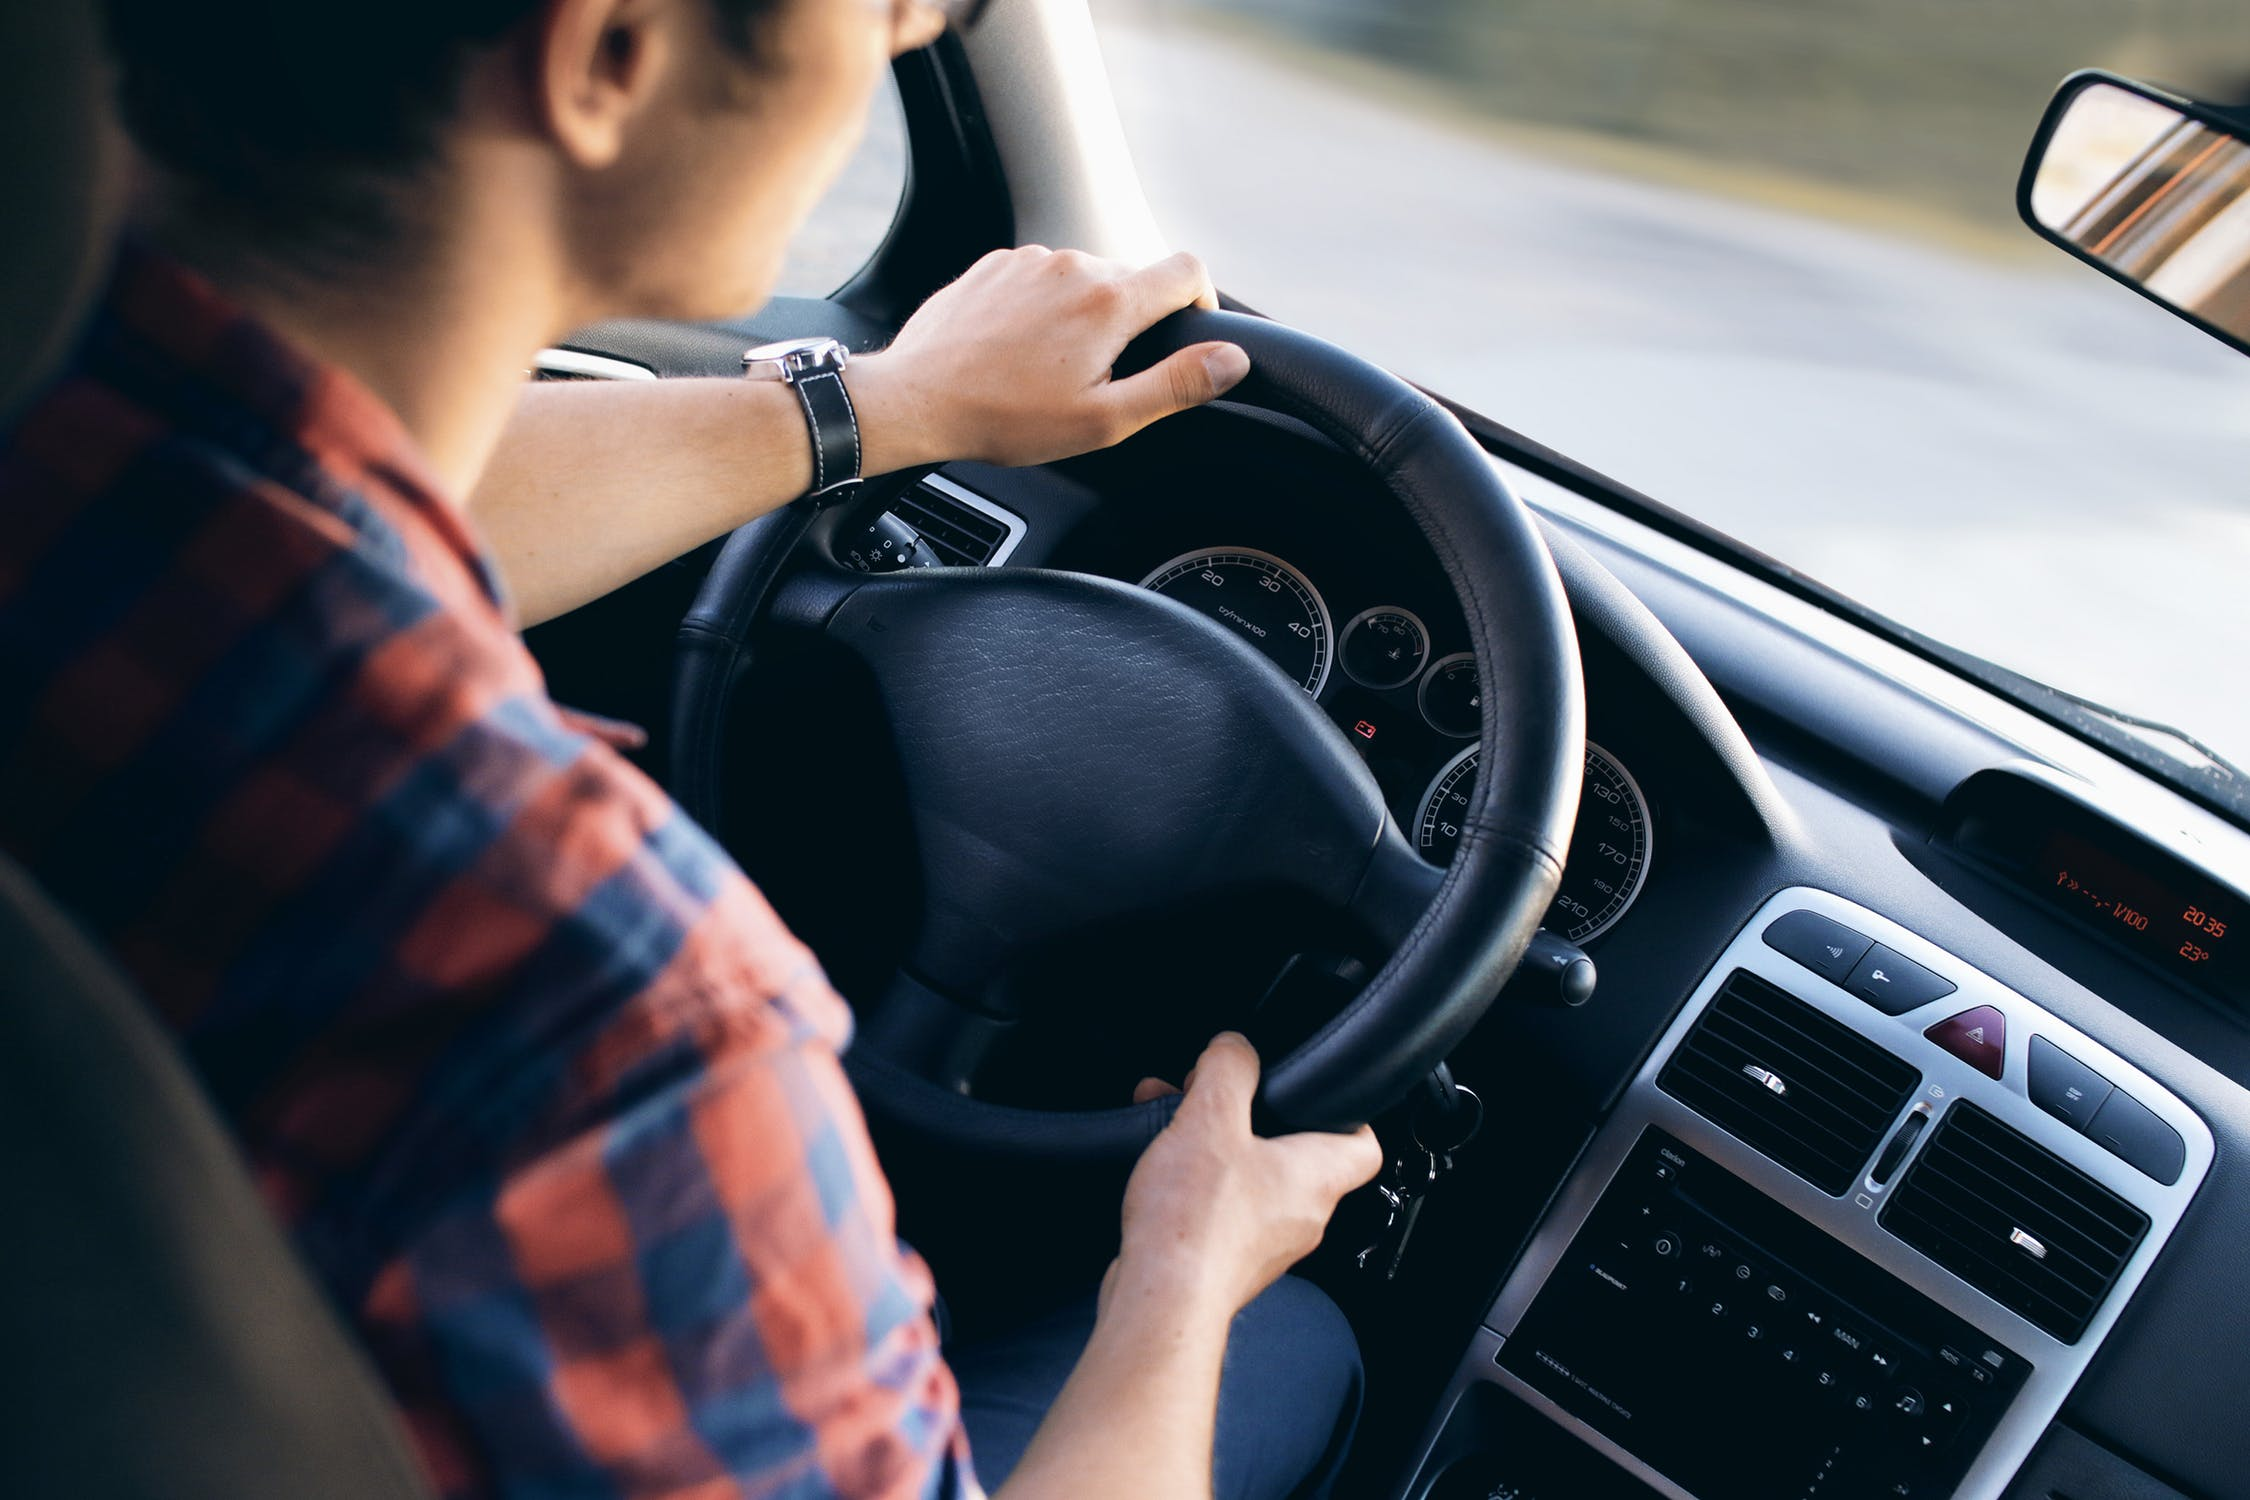 Enjoy The Freedom To Drive With A Peace Of Mind